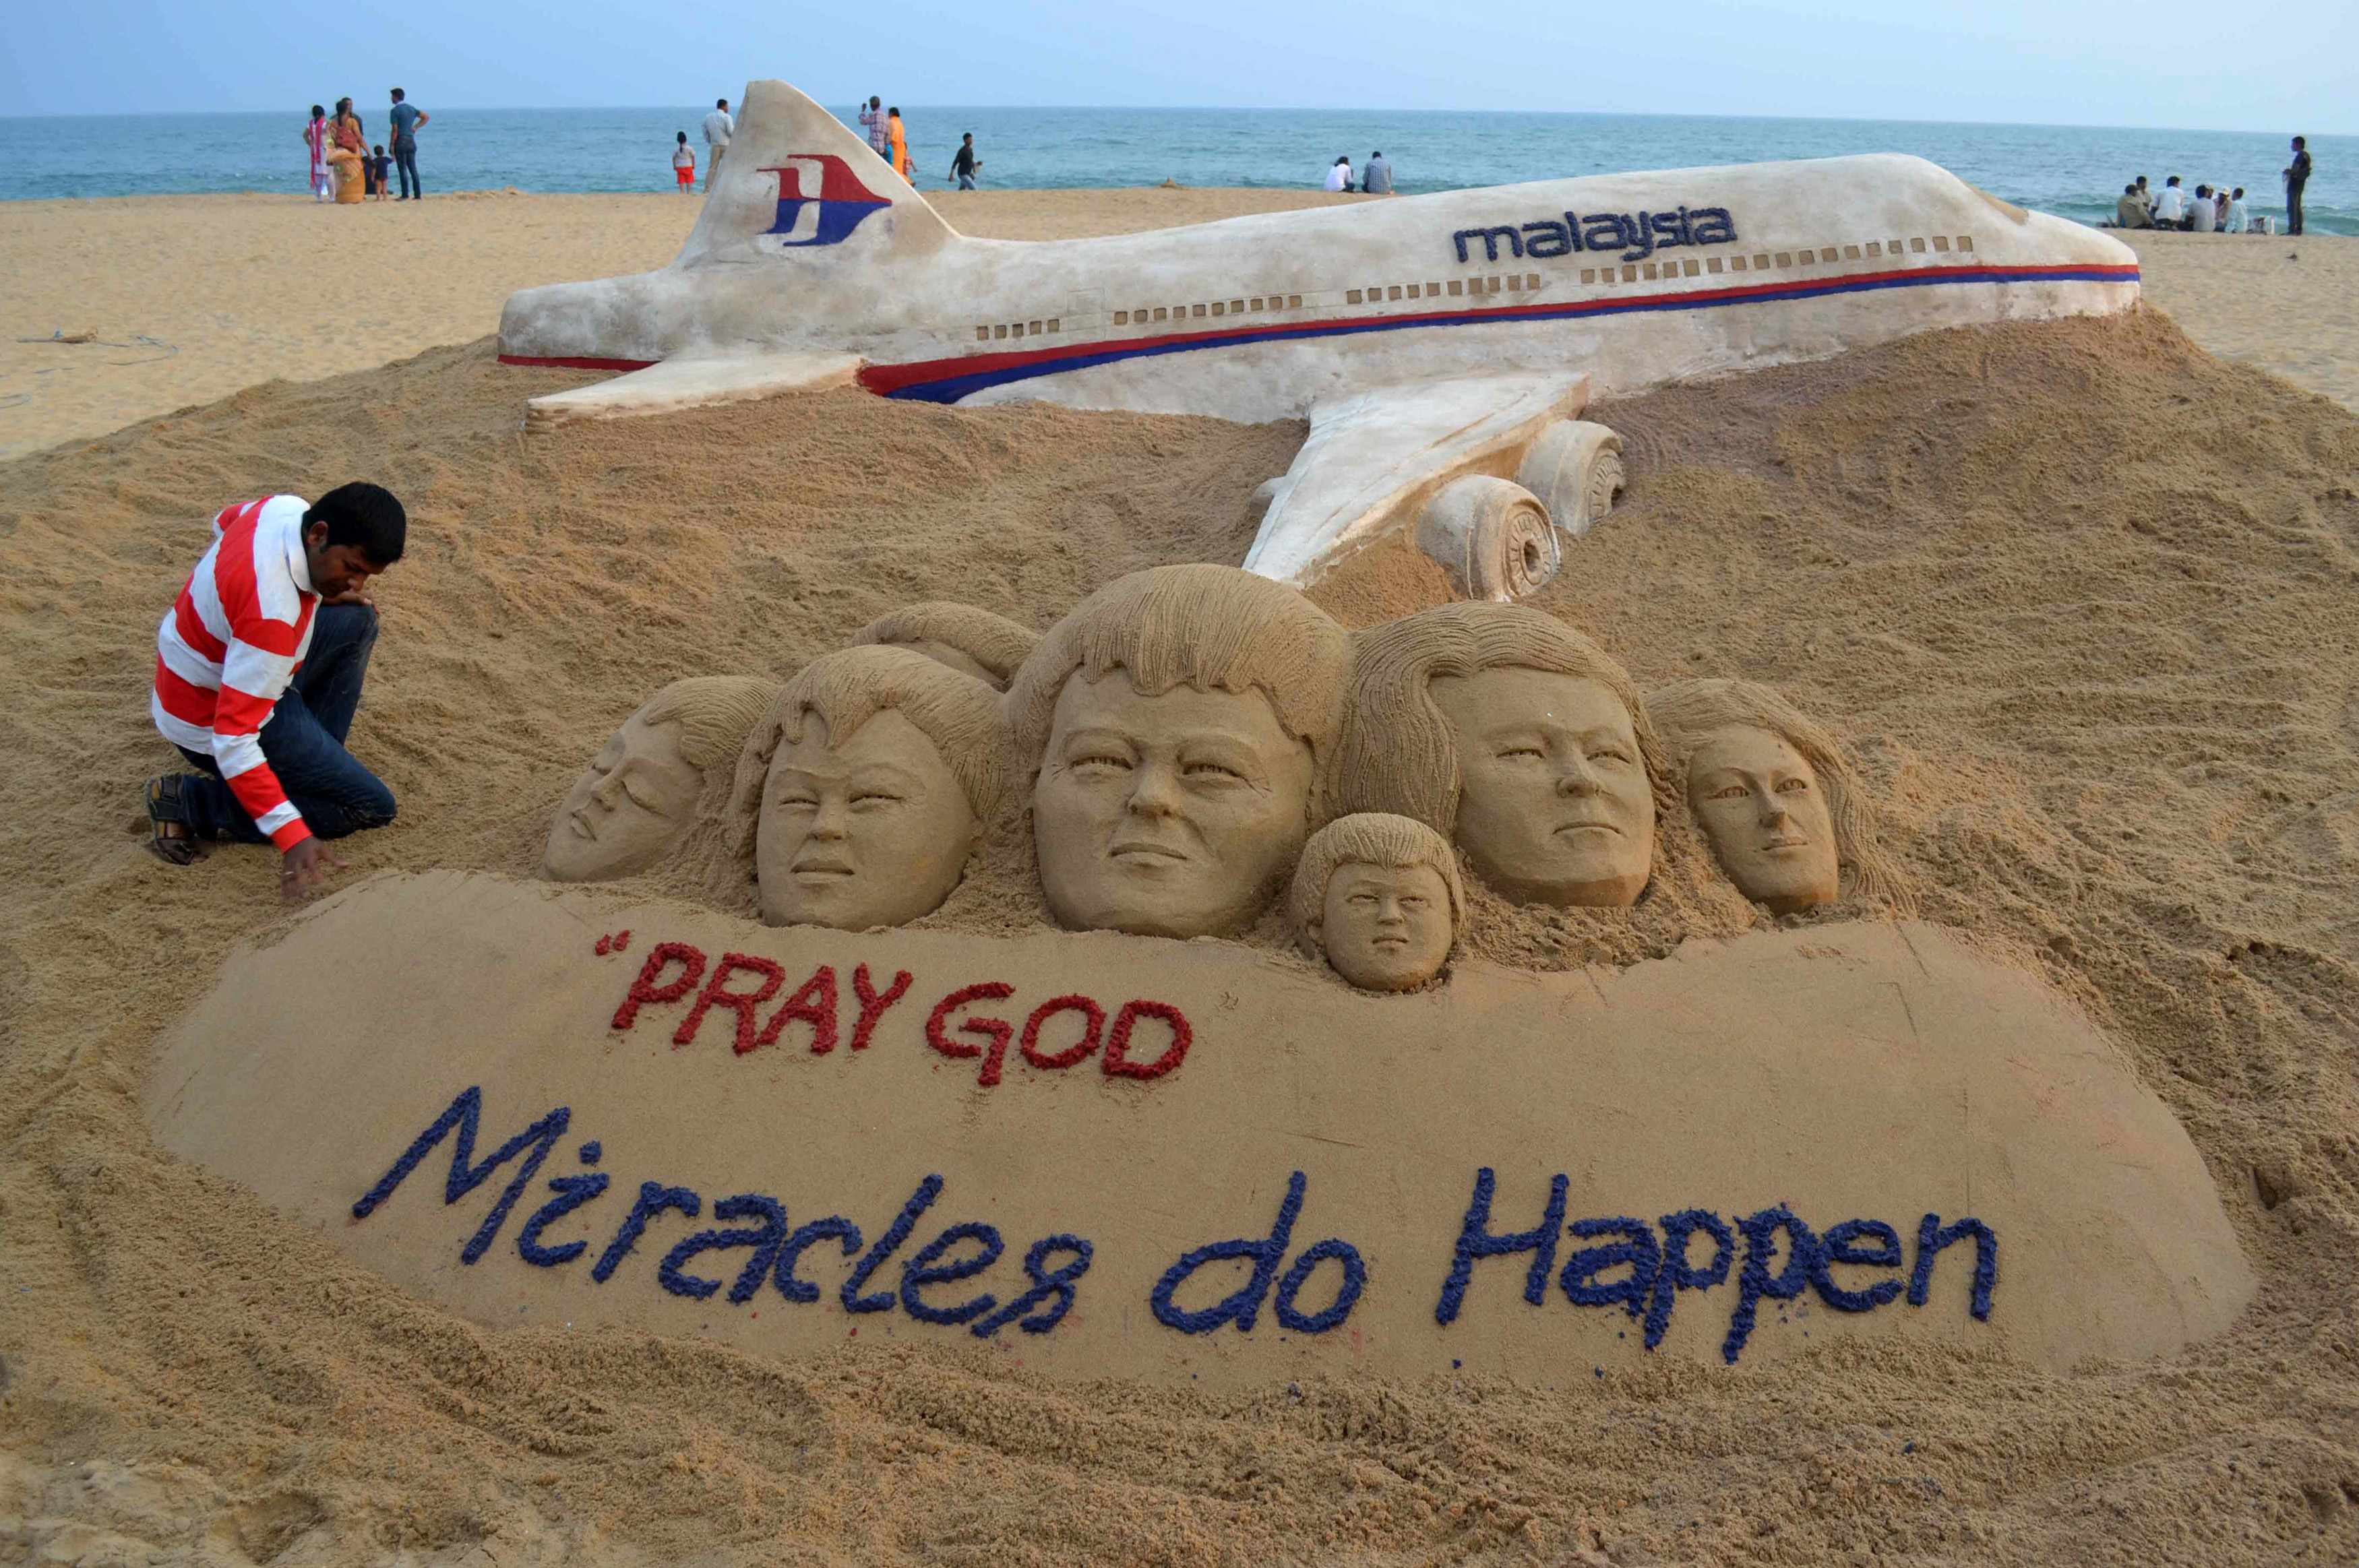 The search for missing flight MH370 ended before now, but nature could still prevail